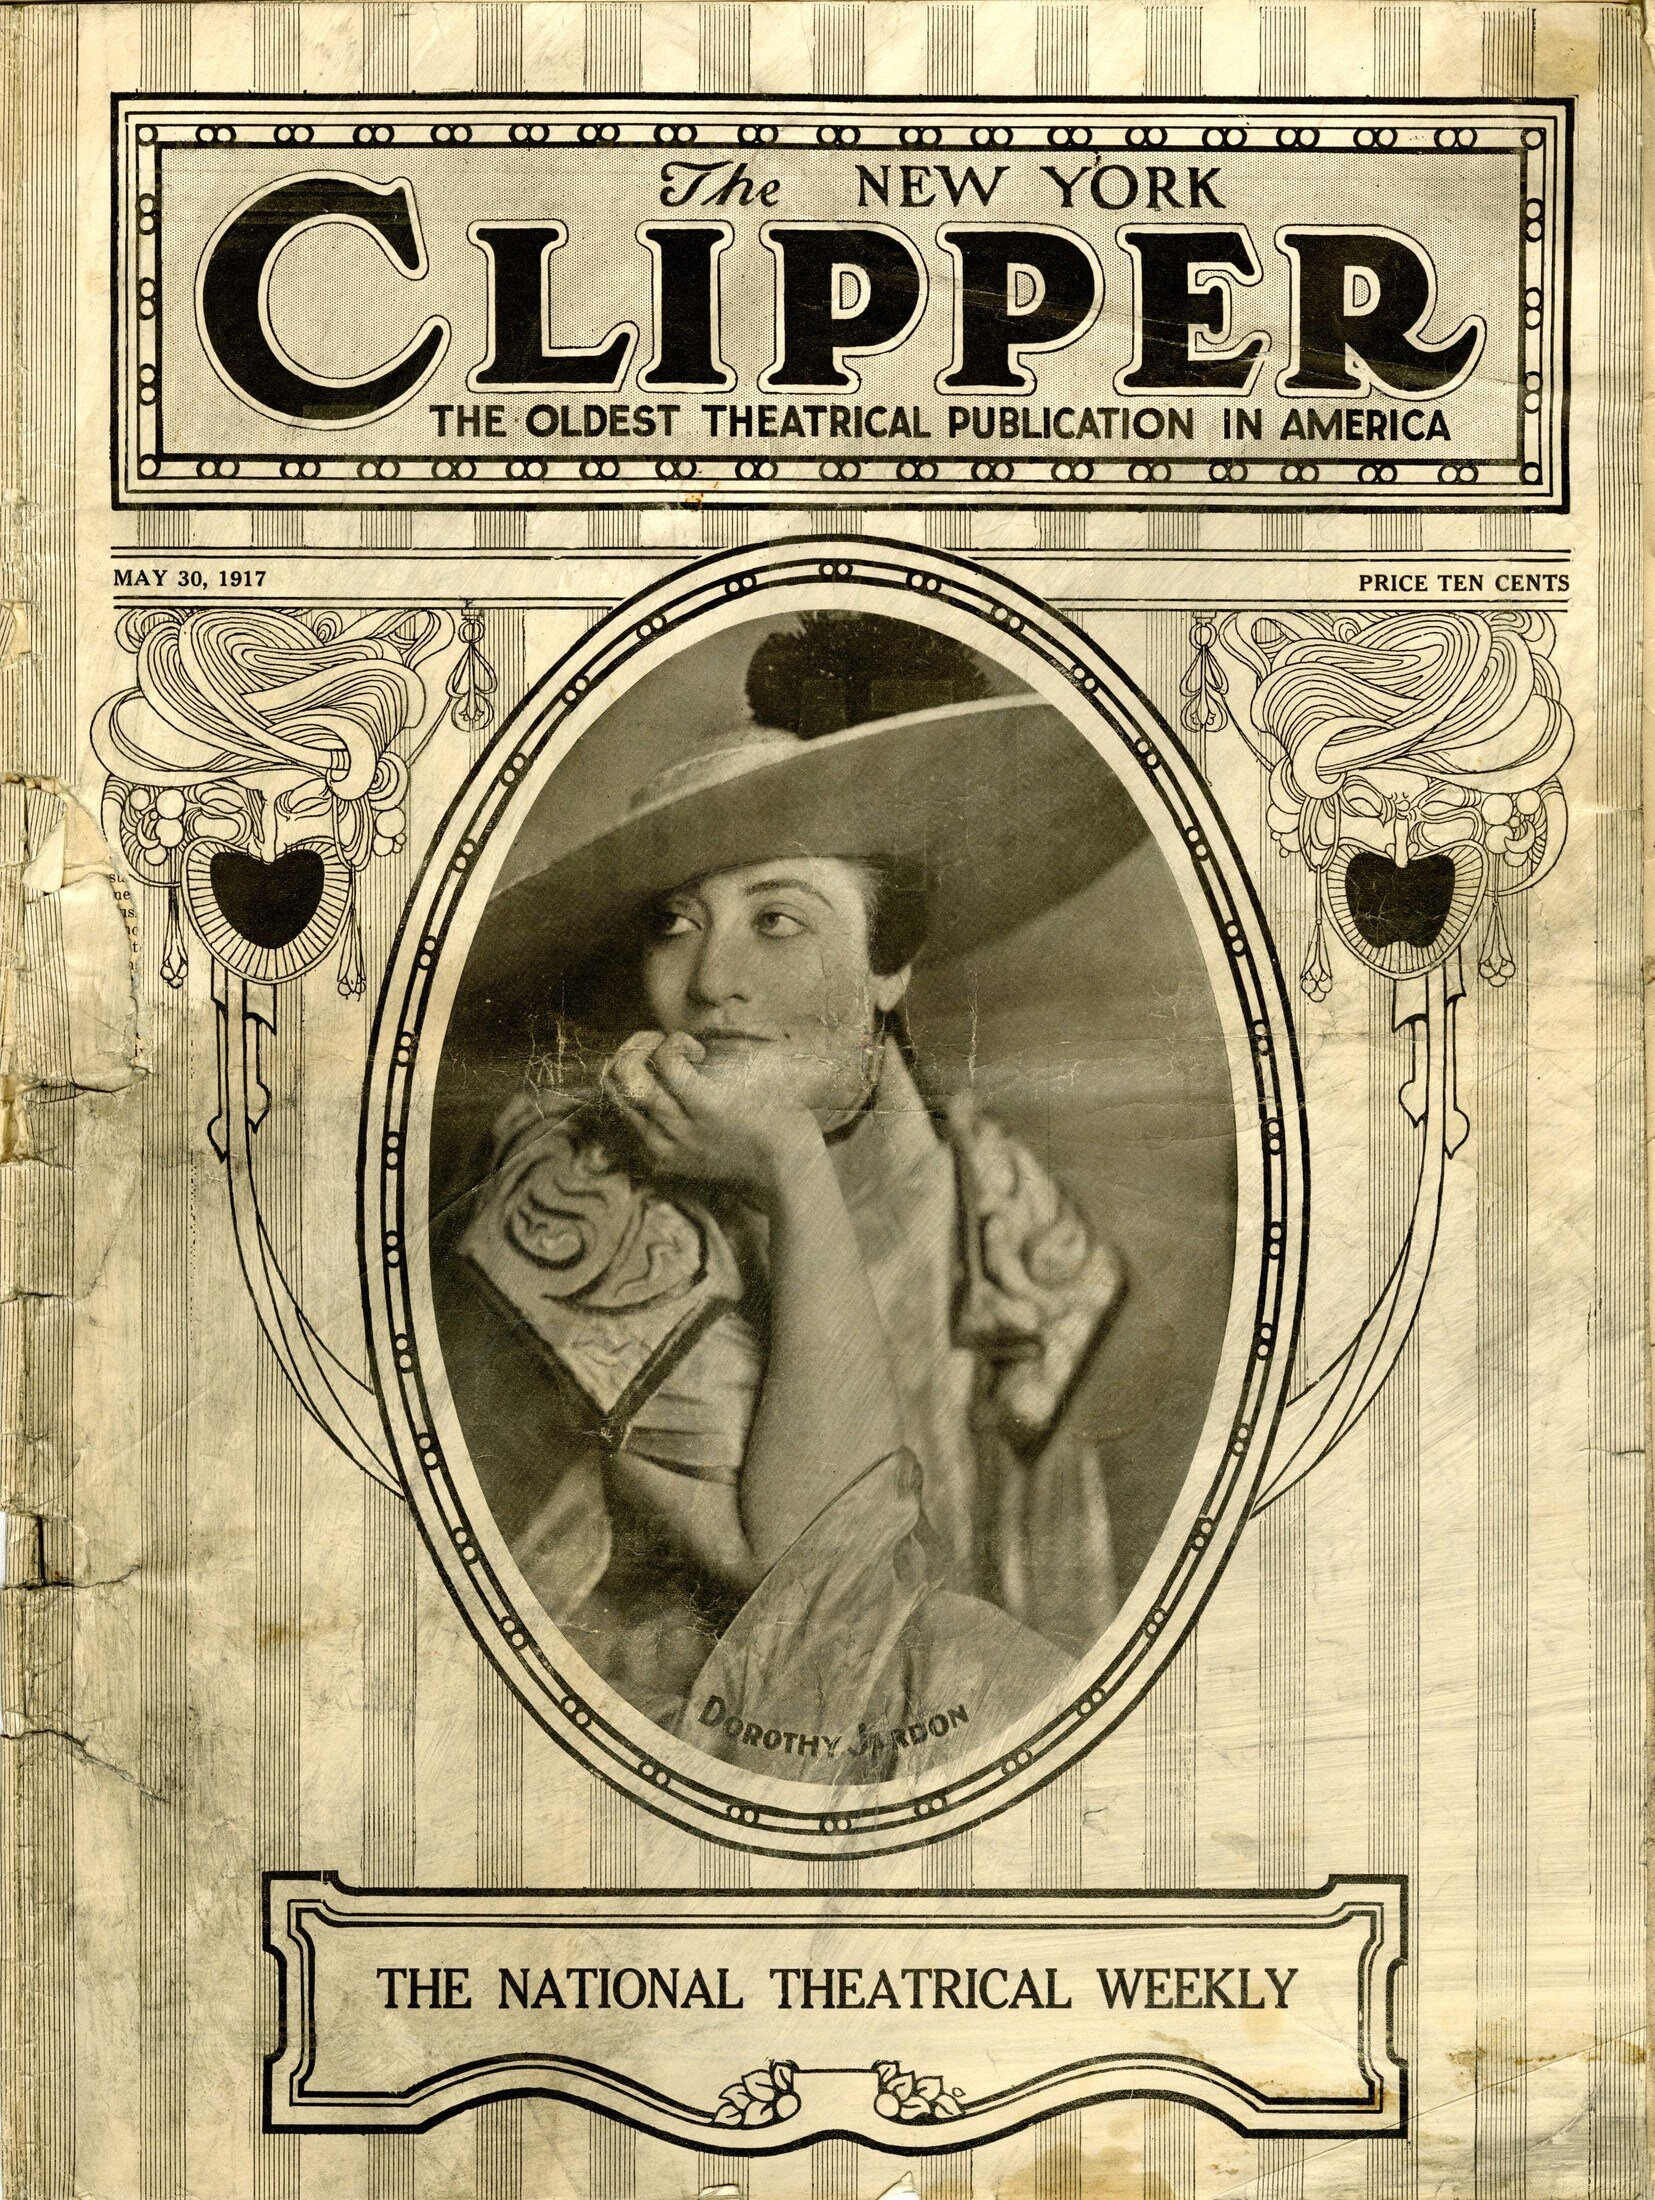 The New York Clipper, May 26, 1917.